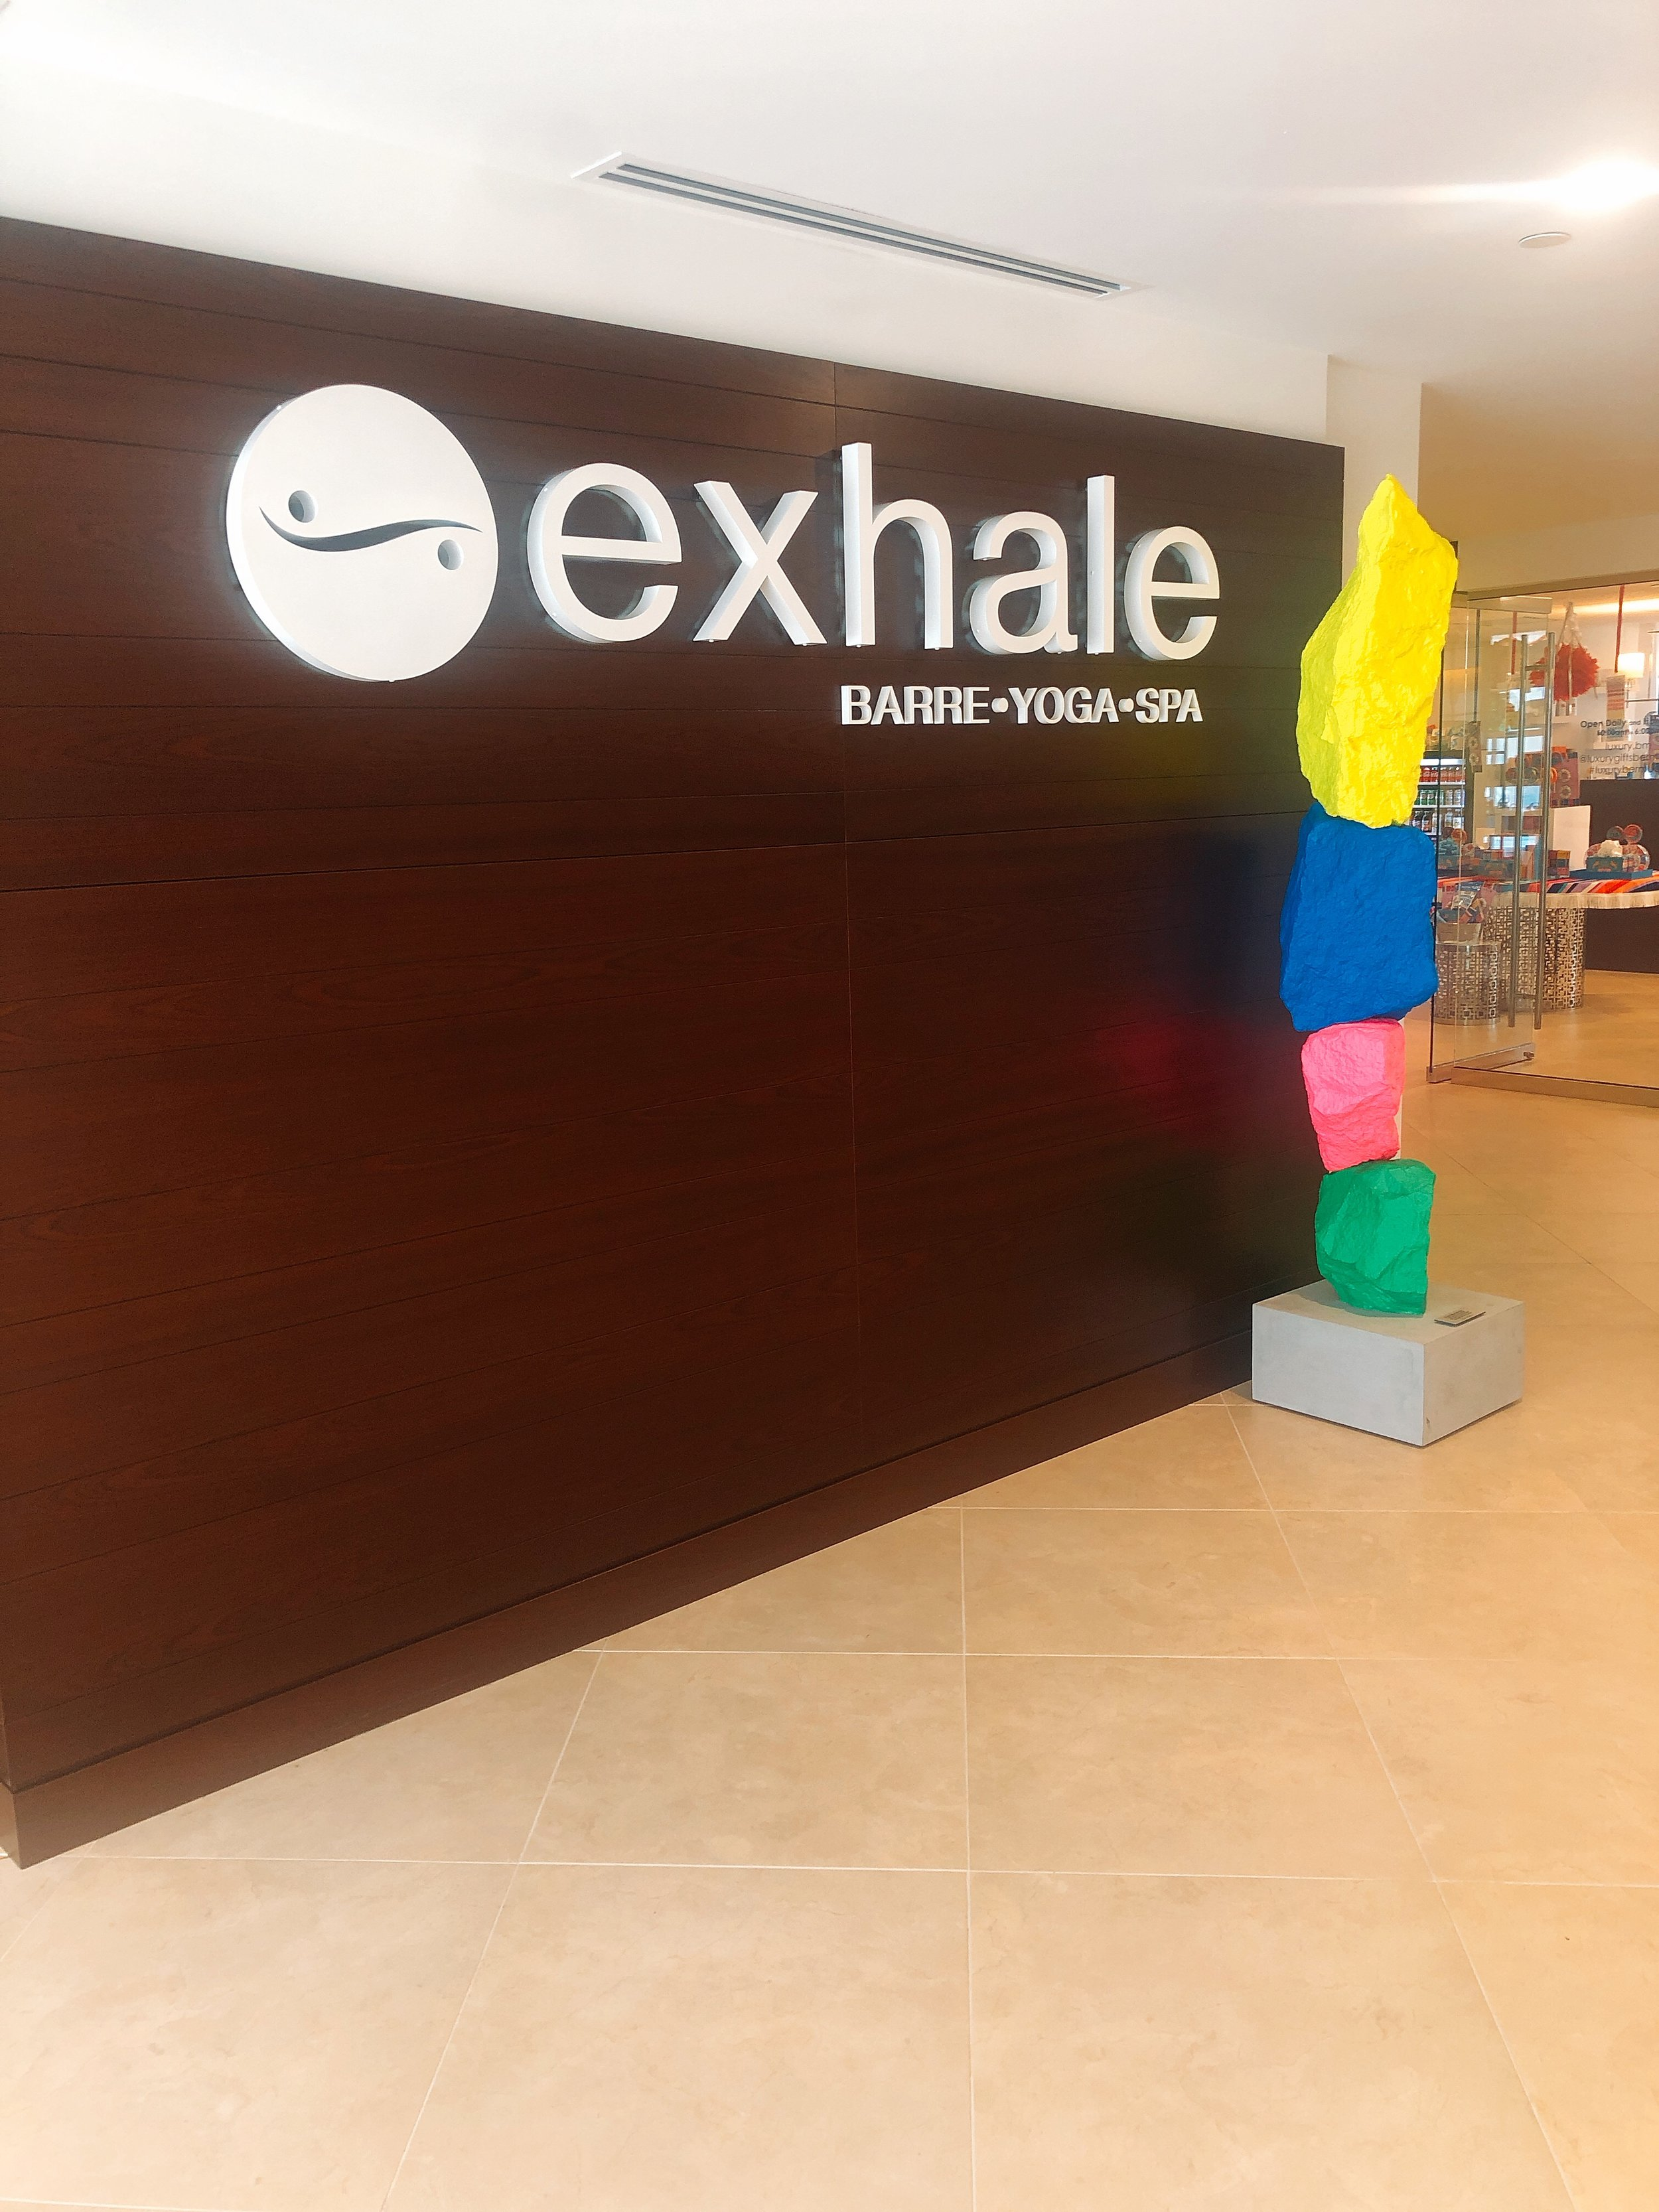 Exhale Spa and Workout Classes/Gym